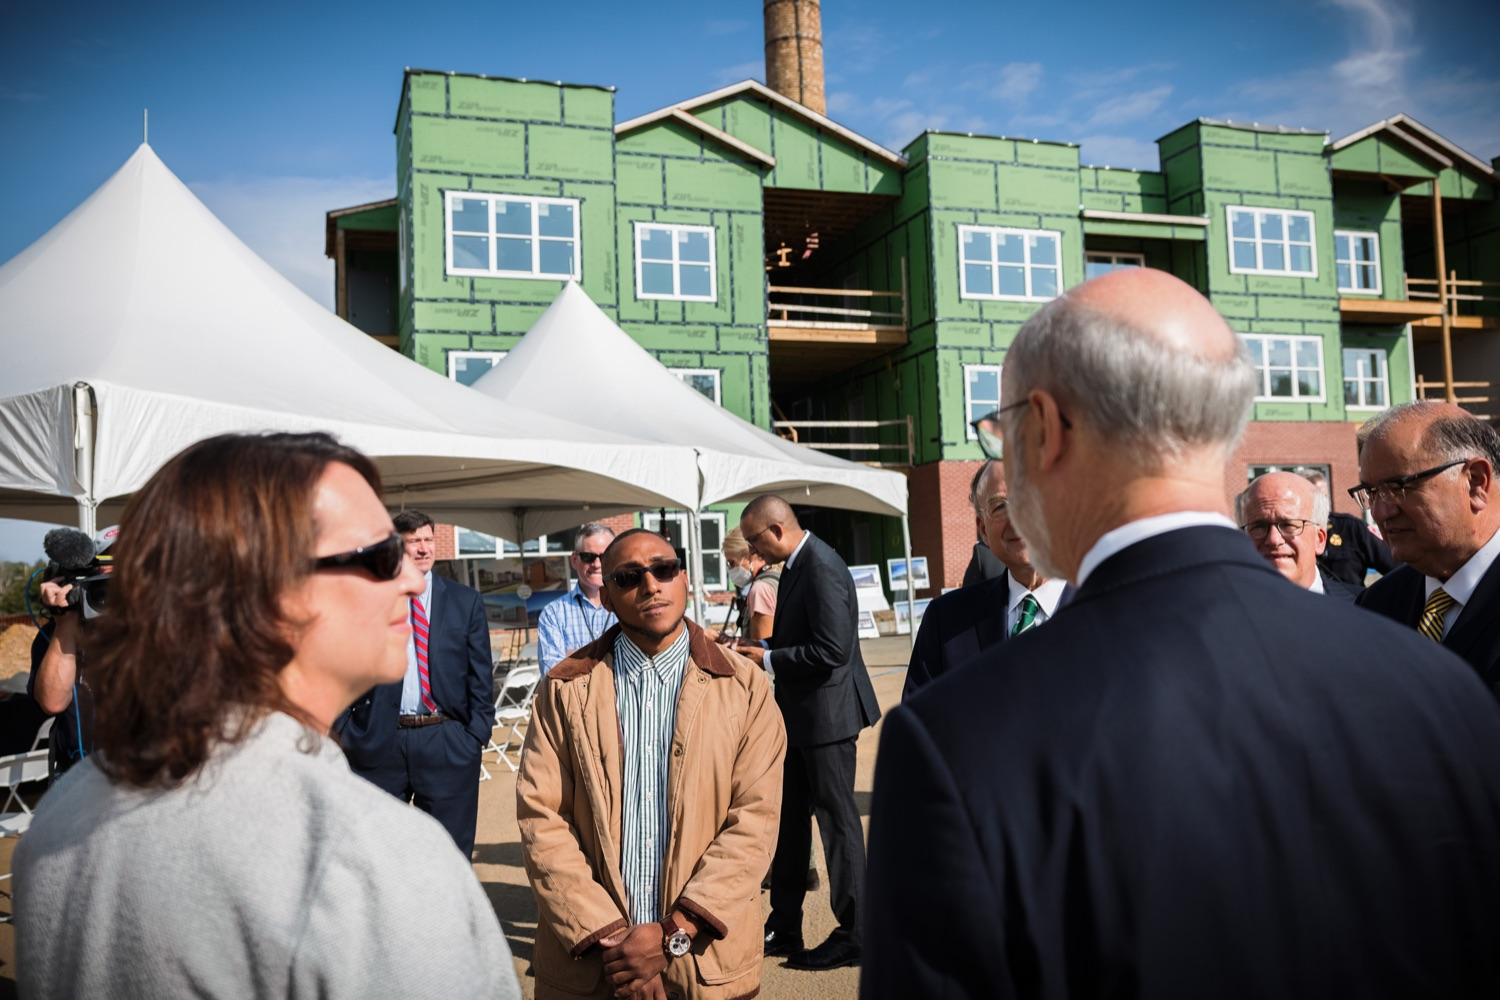 """<a href=""""https://filesource.wostreaming.net/commonwealthofpa/photo/20125_gov_economicDevelopment_dz_005.jpg"""" target=""""_blank"""">⇣Download Photo<br></a>Governor Tom Wolf touring the site of the Mill at Easton. Governor Tom Wolf today visited the City of Easton to highlight millions of dollars in state investments in several economic development projects that are revitalizing formerly vacant and blighted properties.  Easton, PA   October 8, 2021."""